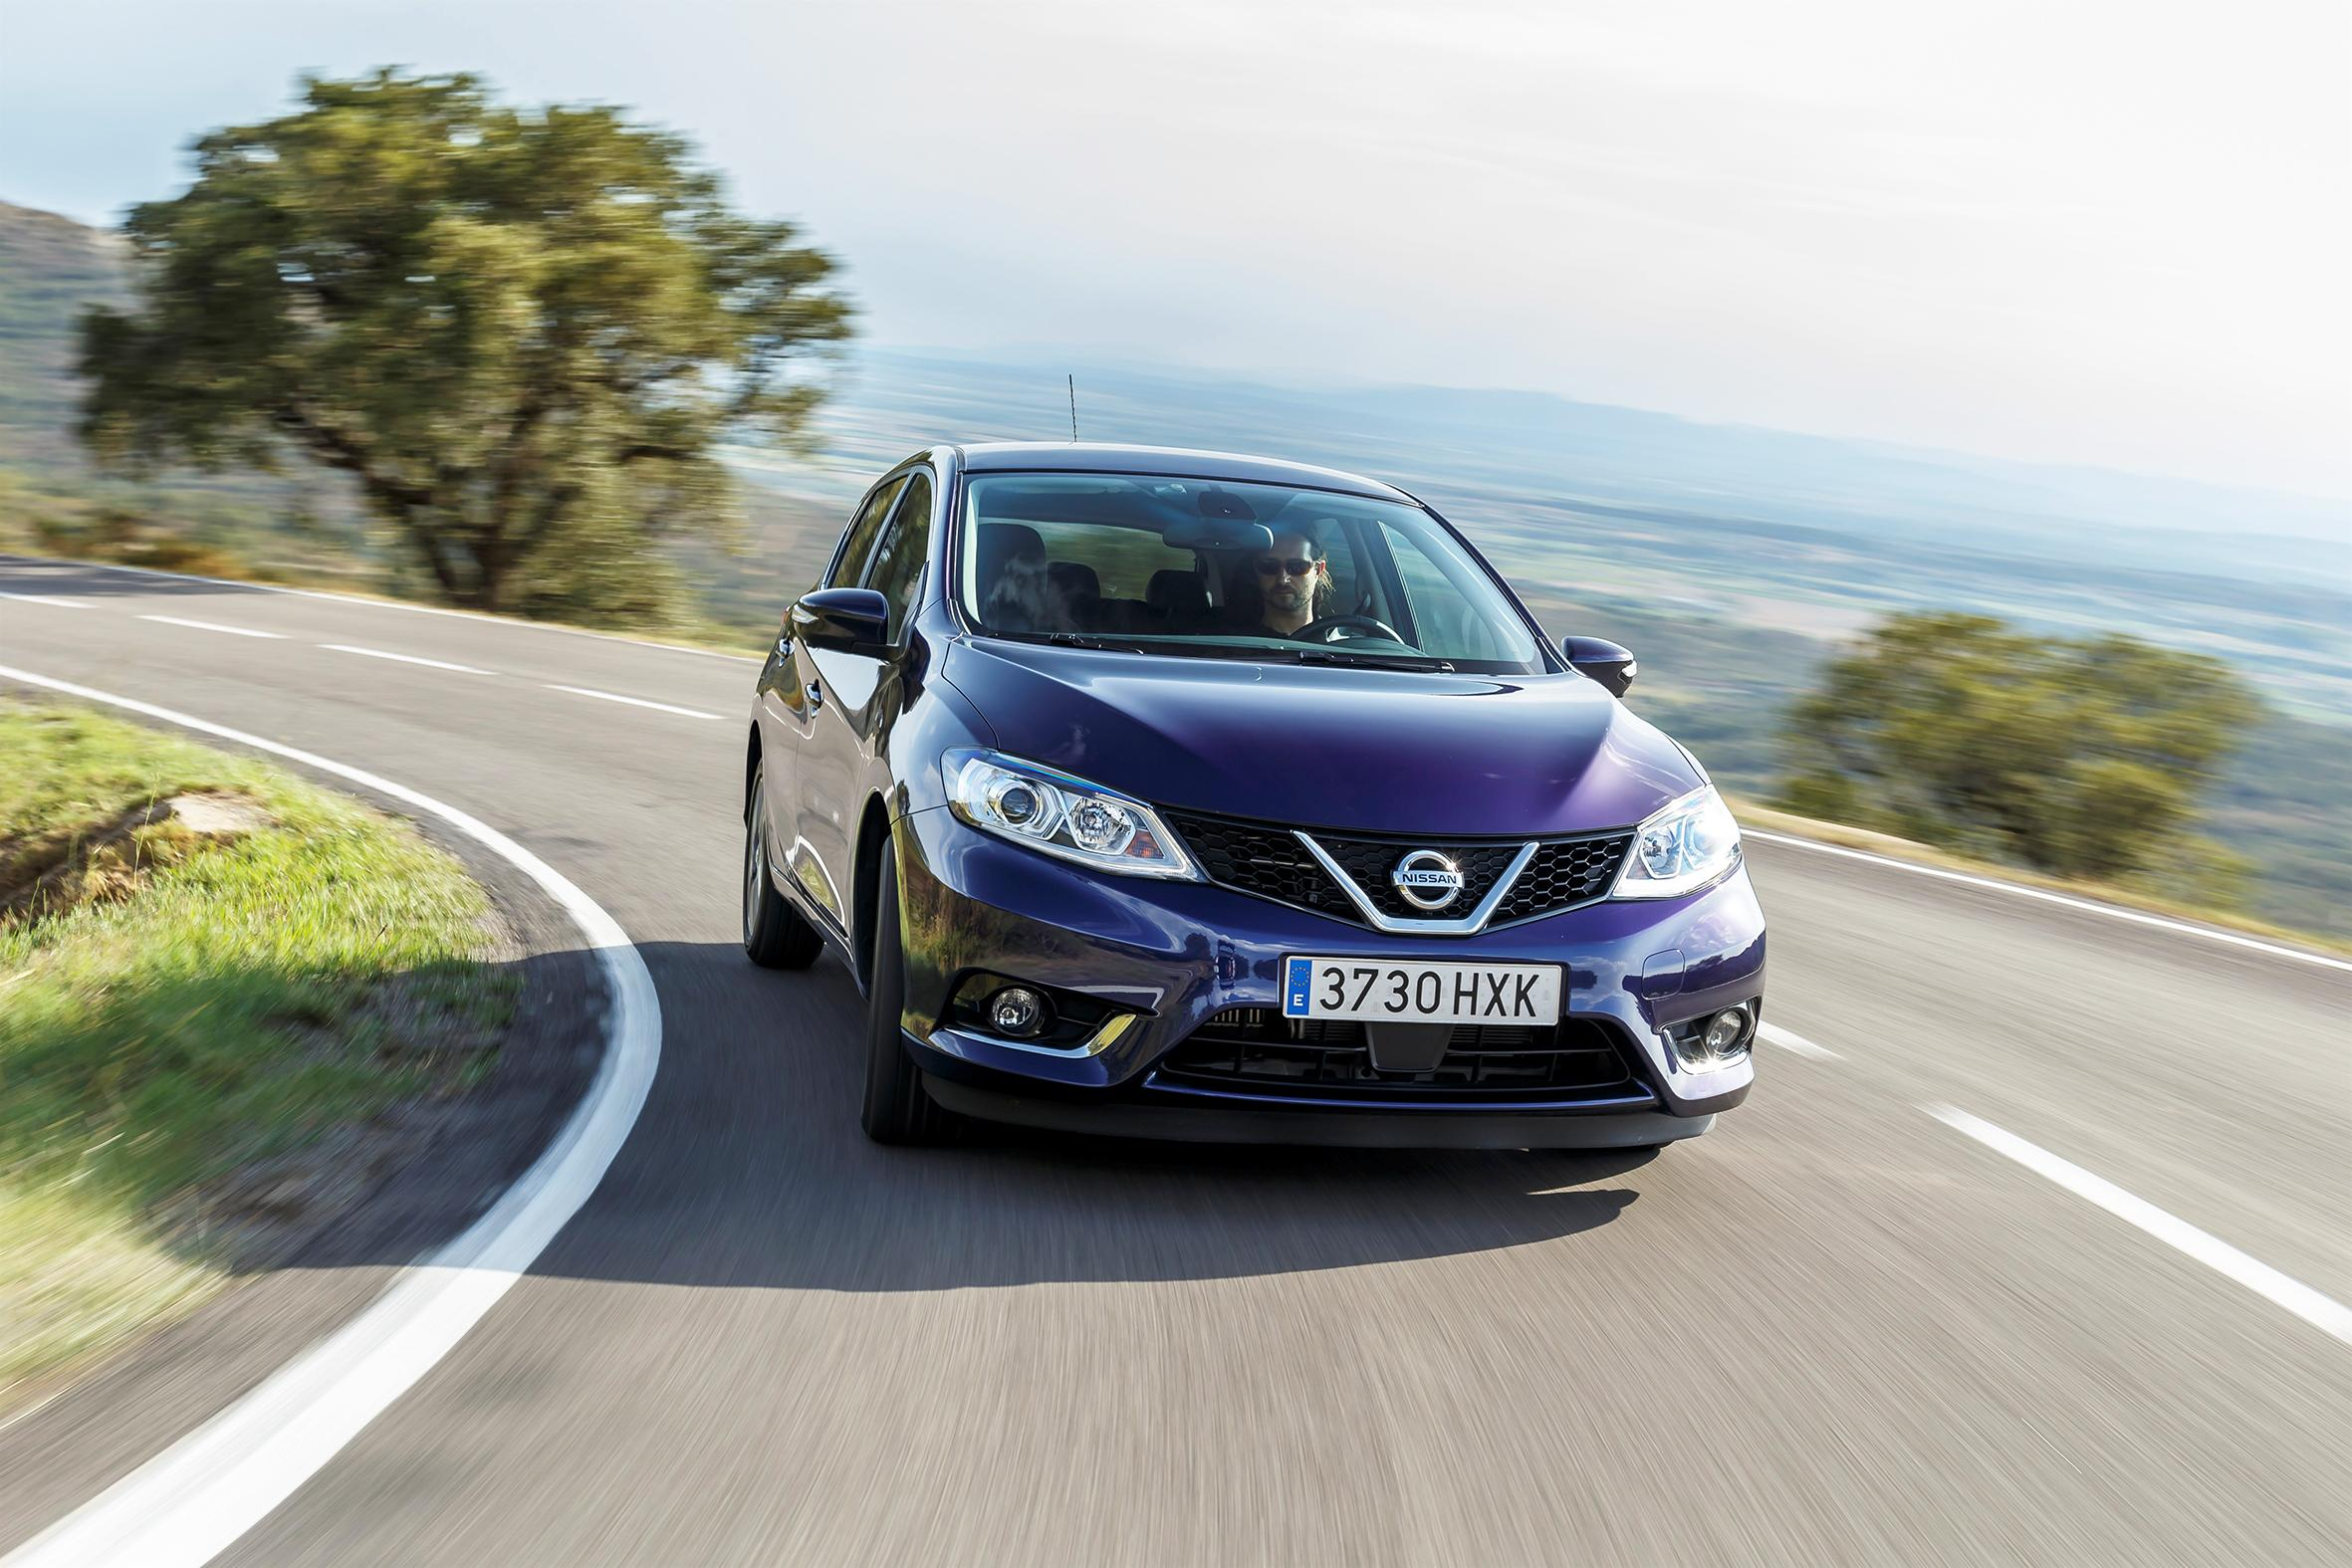 Plenty of space in the new Nissan Pulsar